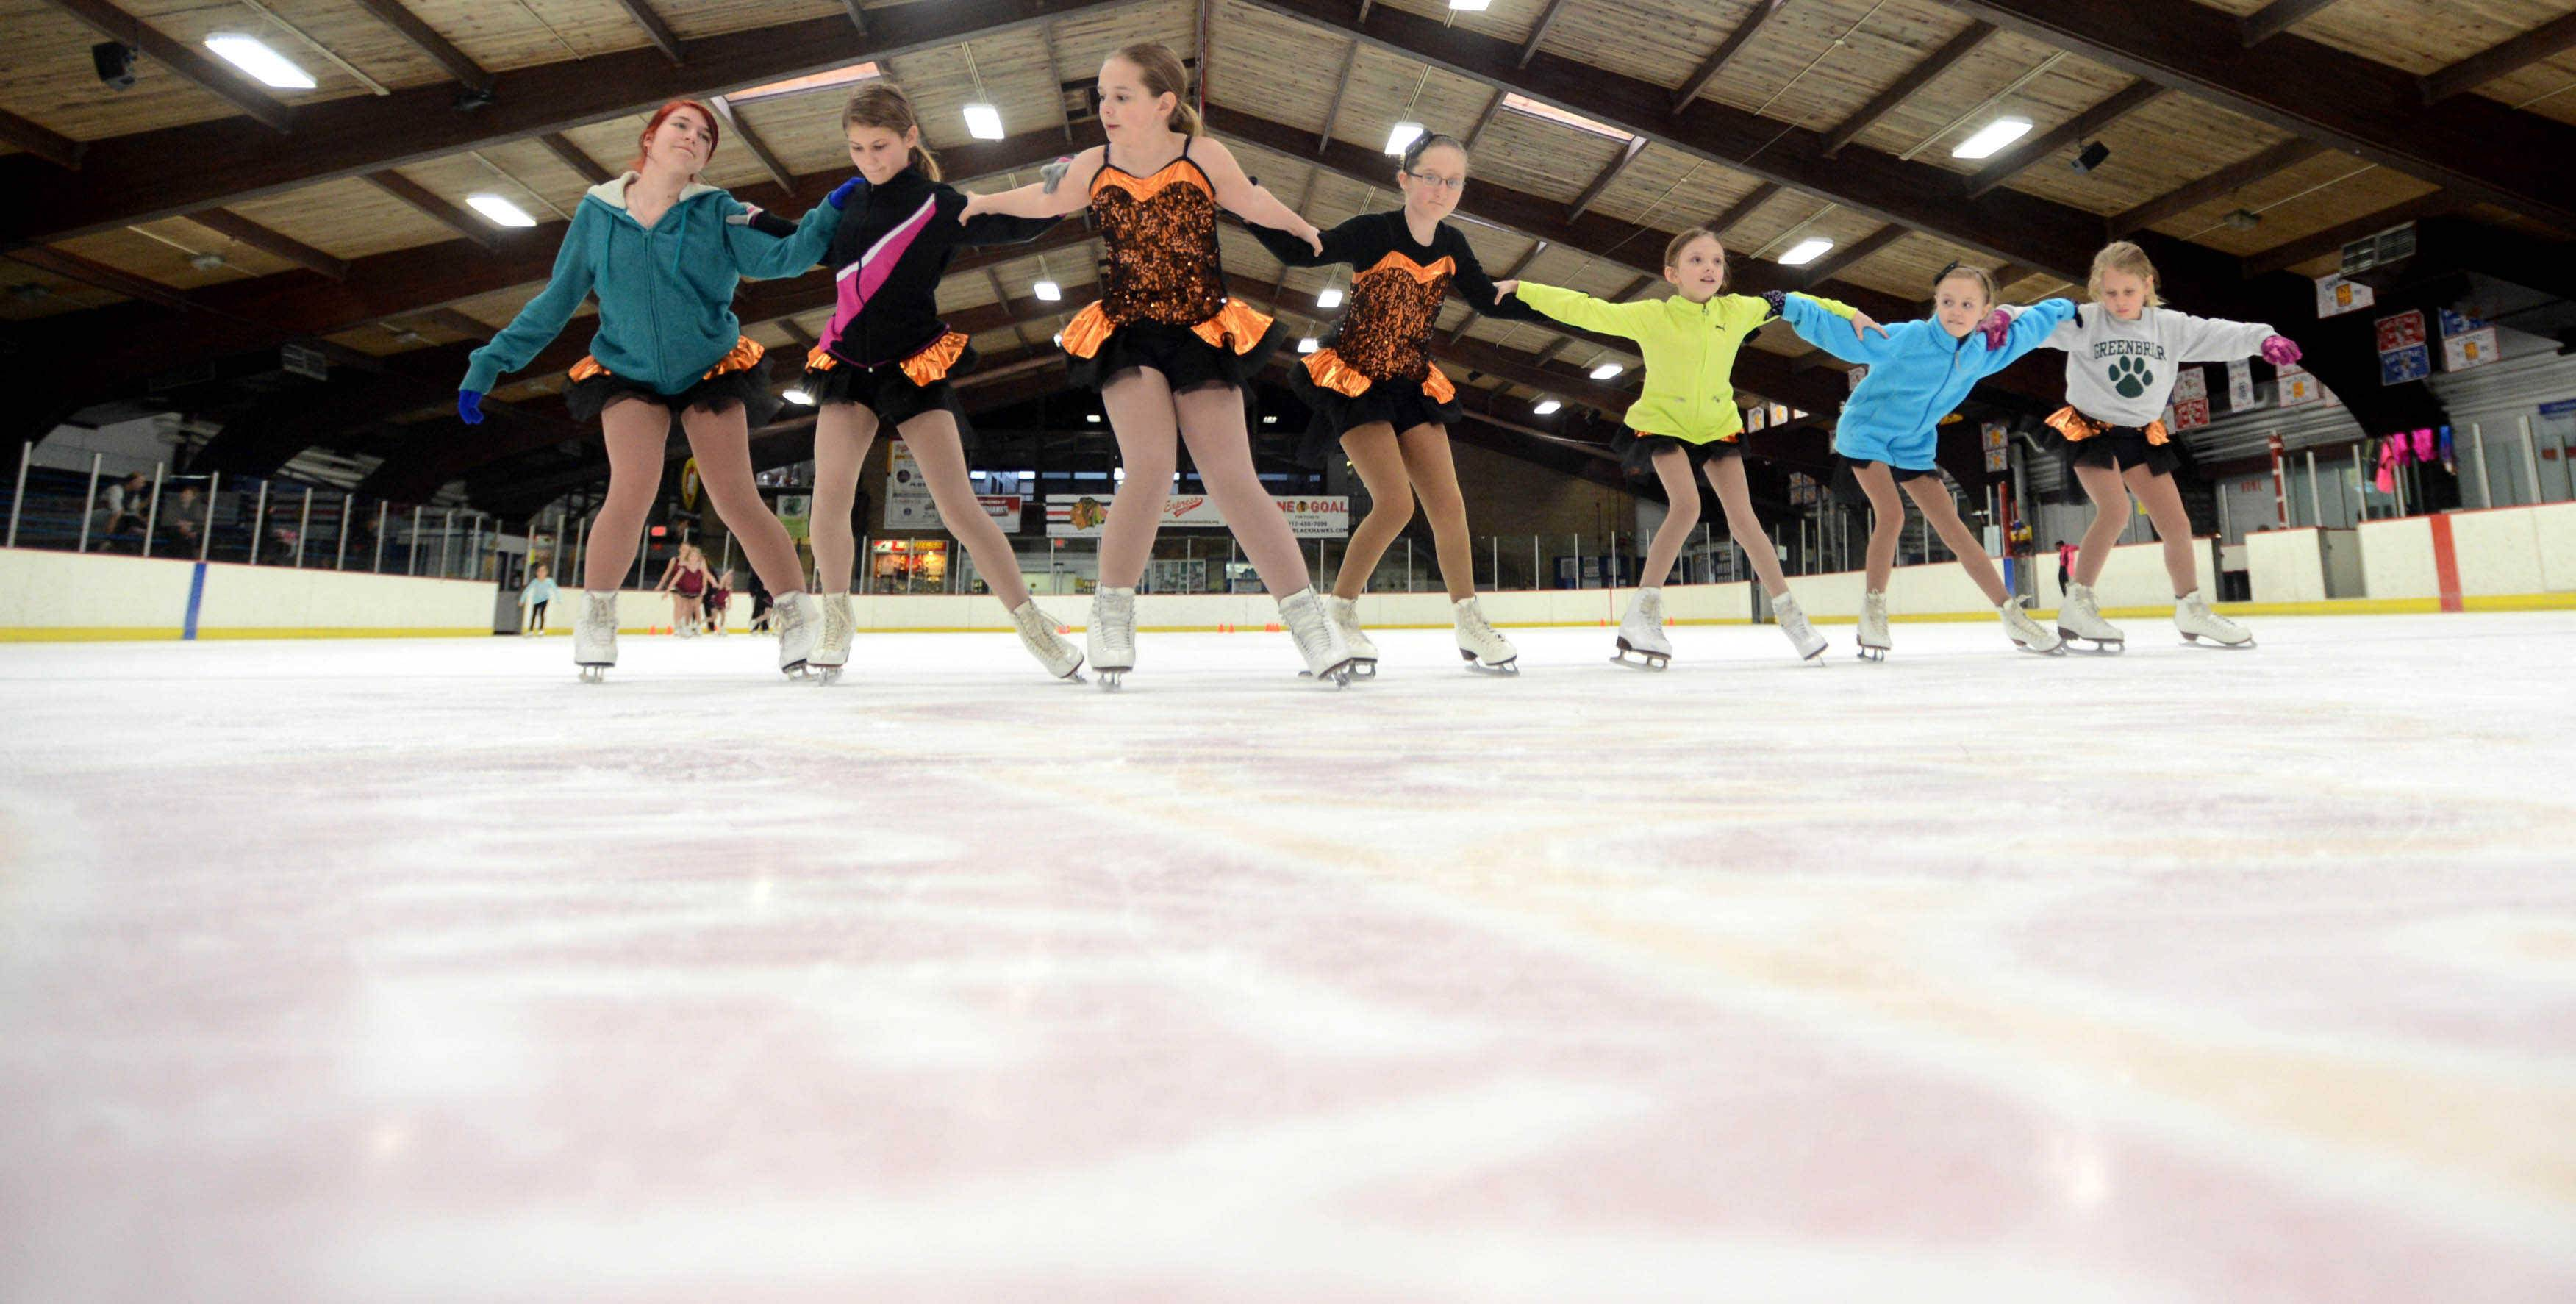 Gamma-level students participate during rehearsal at the Oakton Ice Arena for the Oakton Ice Show April 25-27.